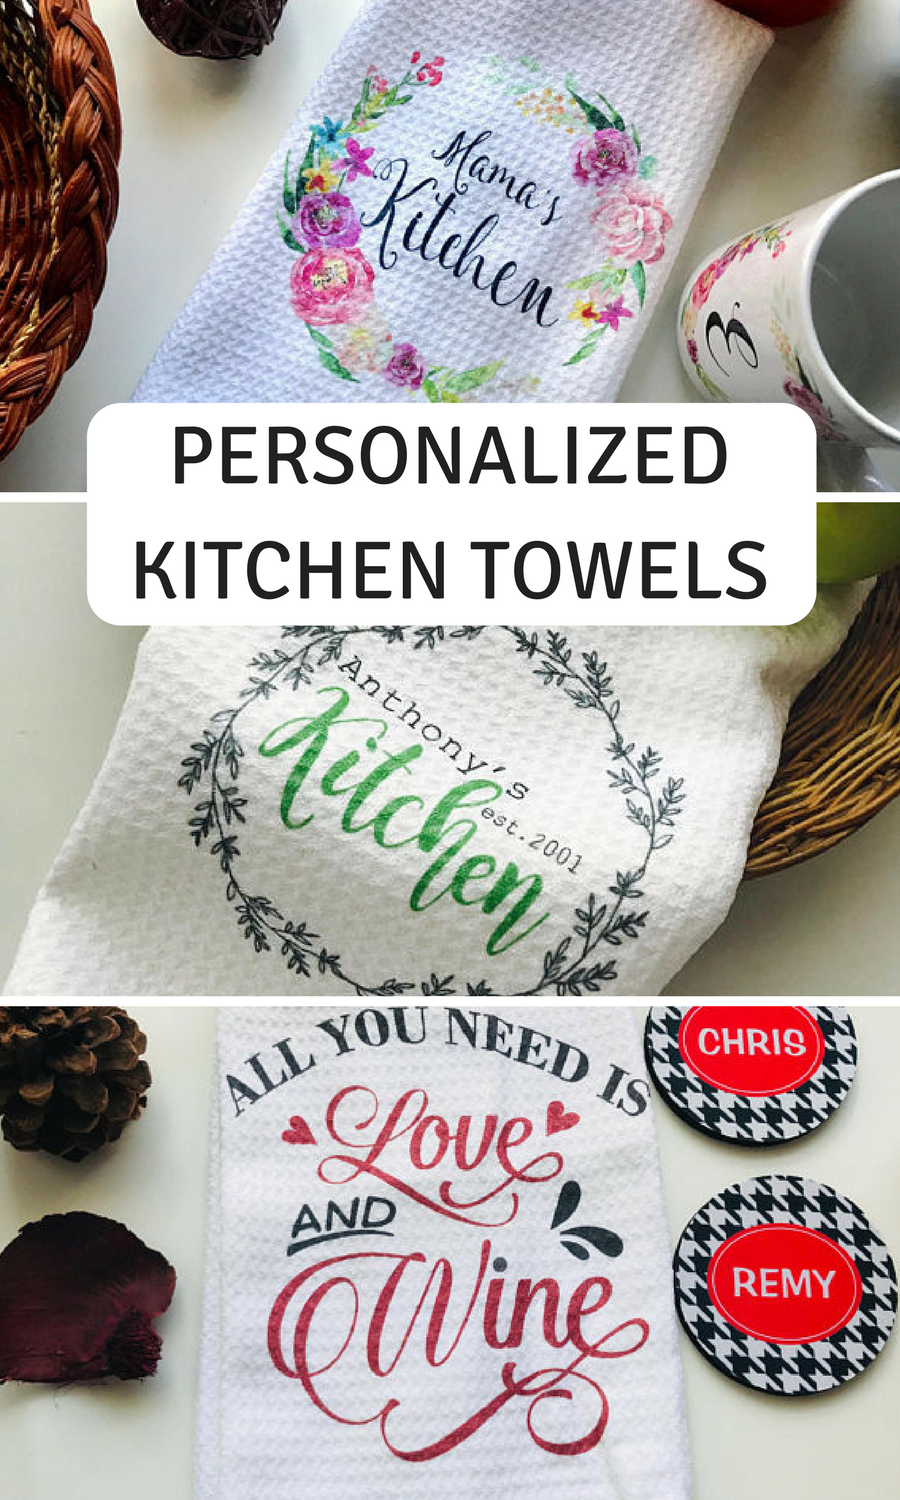 Personalized kitchen towels dish hand towels family kitchen towels